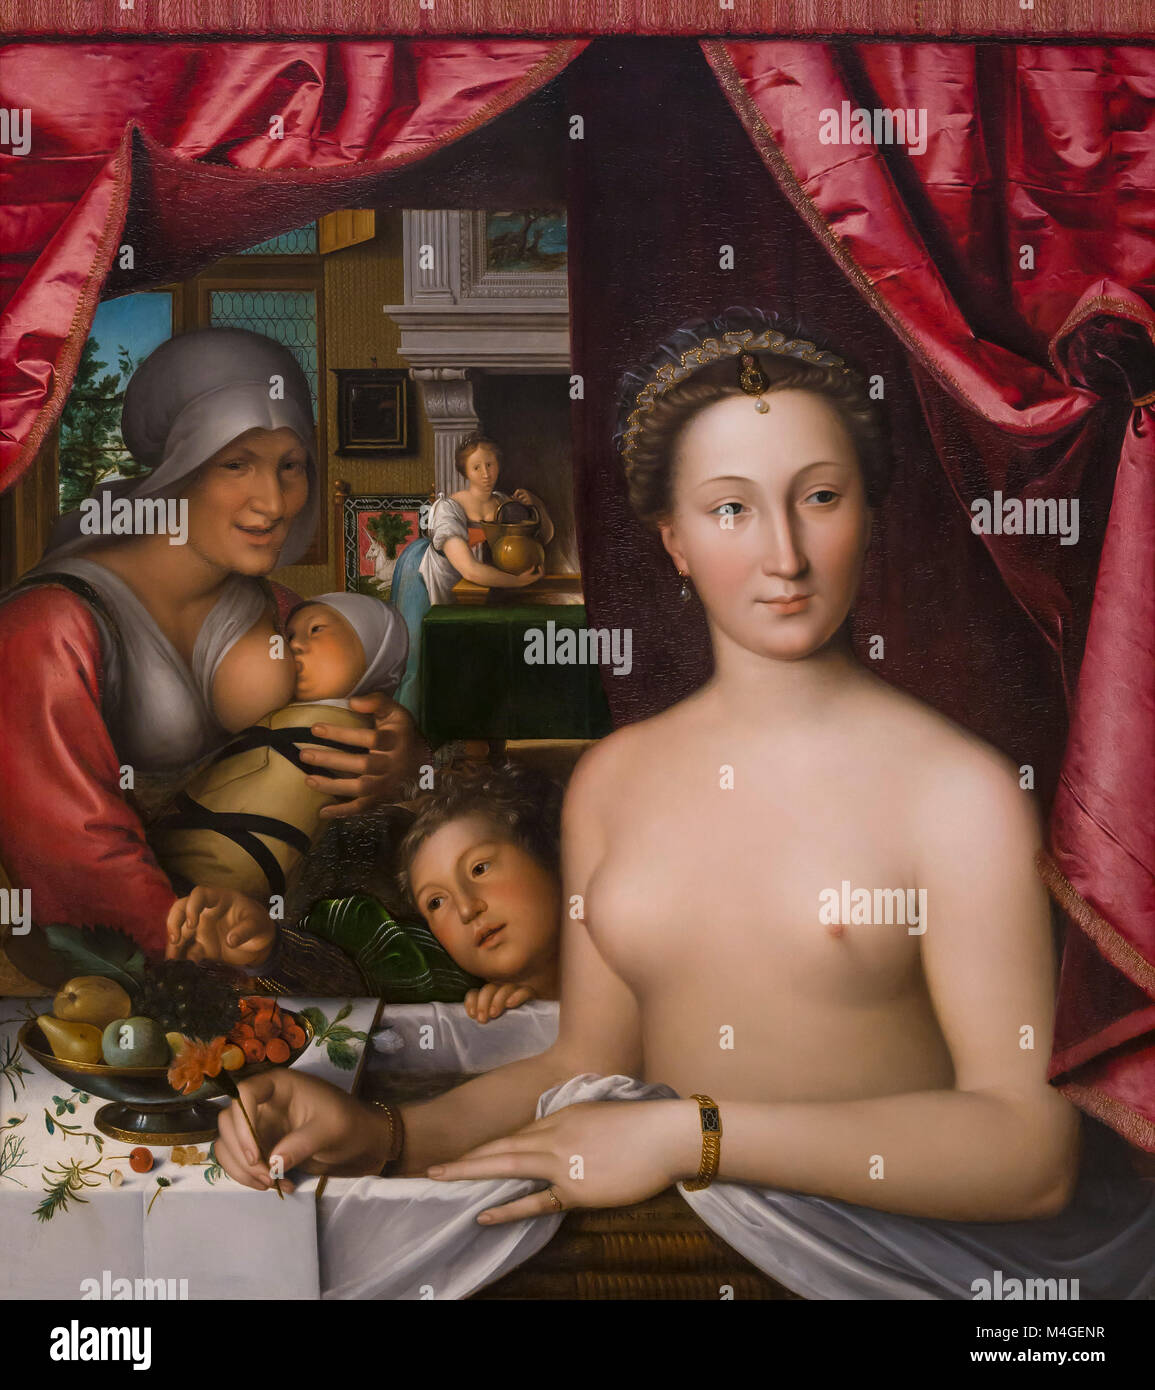 A Lady in Her Bath, Francois Clouet, circa 1571, National Gallery of Art, Washington DC, USA, North America - Stock Image